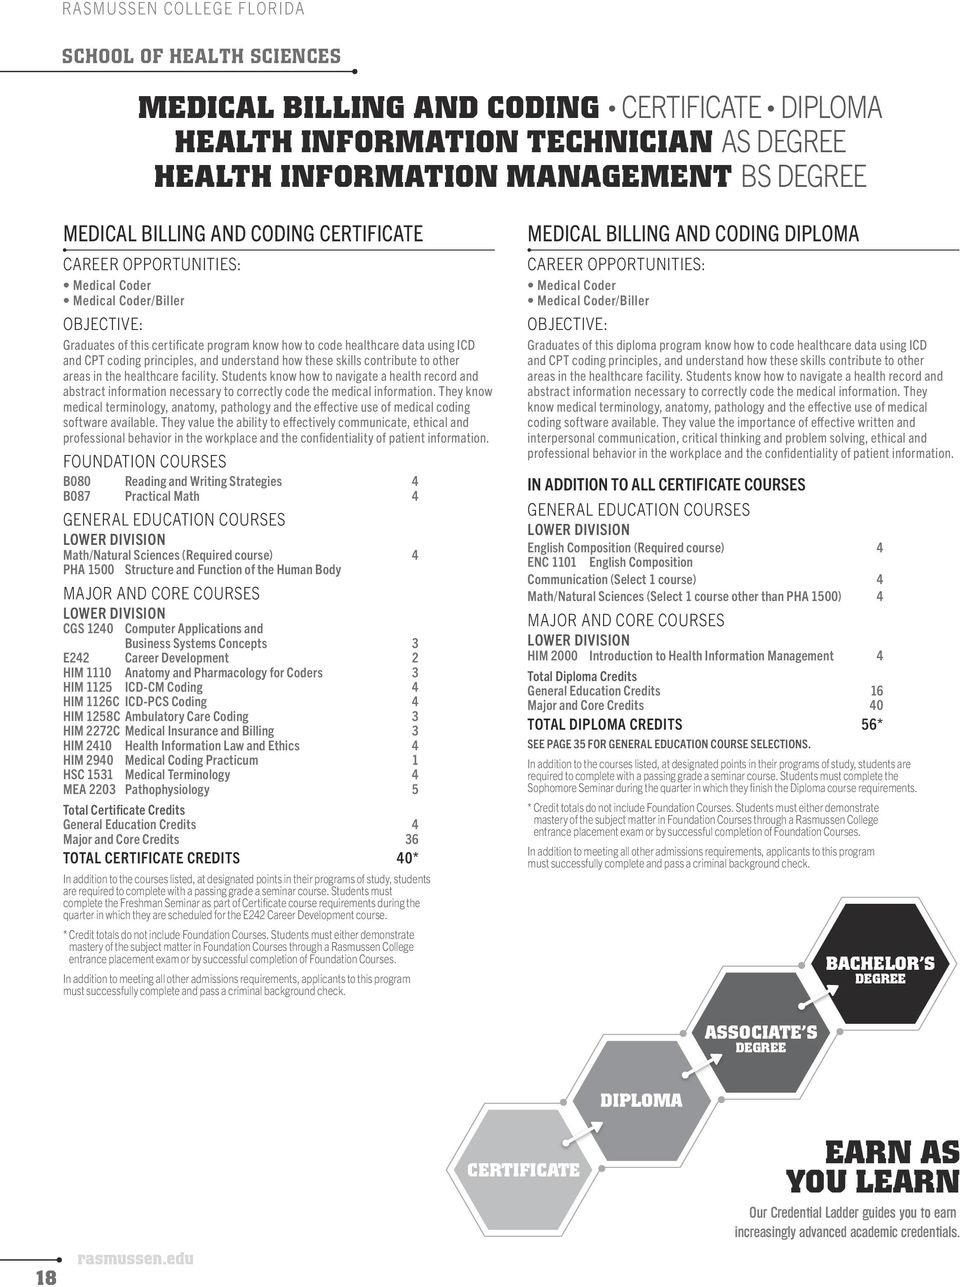 contribute to other areas in the healthcare facility. Students know how to navigate a health record and abstract information necessary to correctly code the medical information.